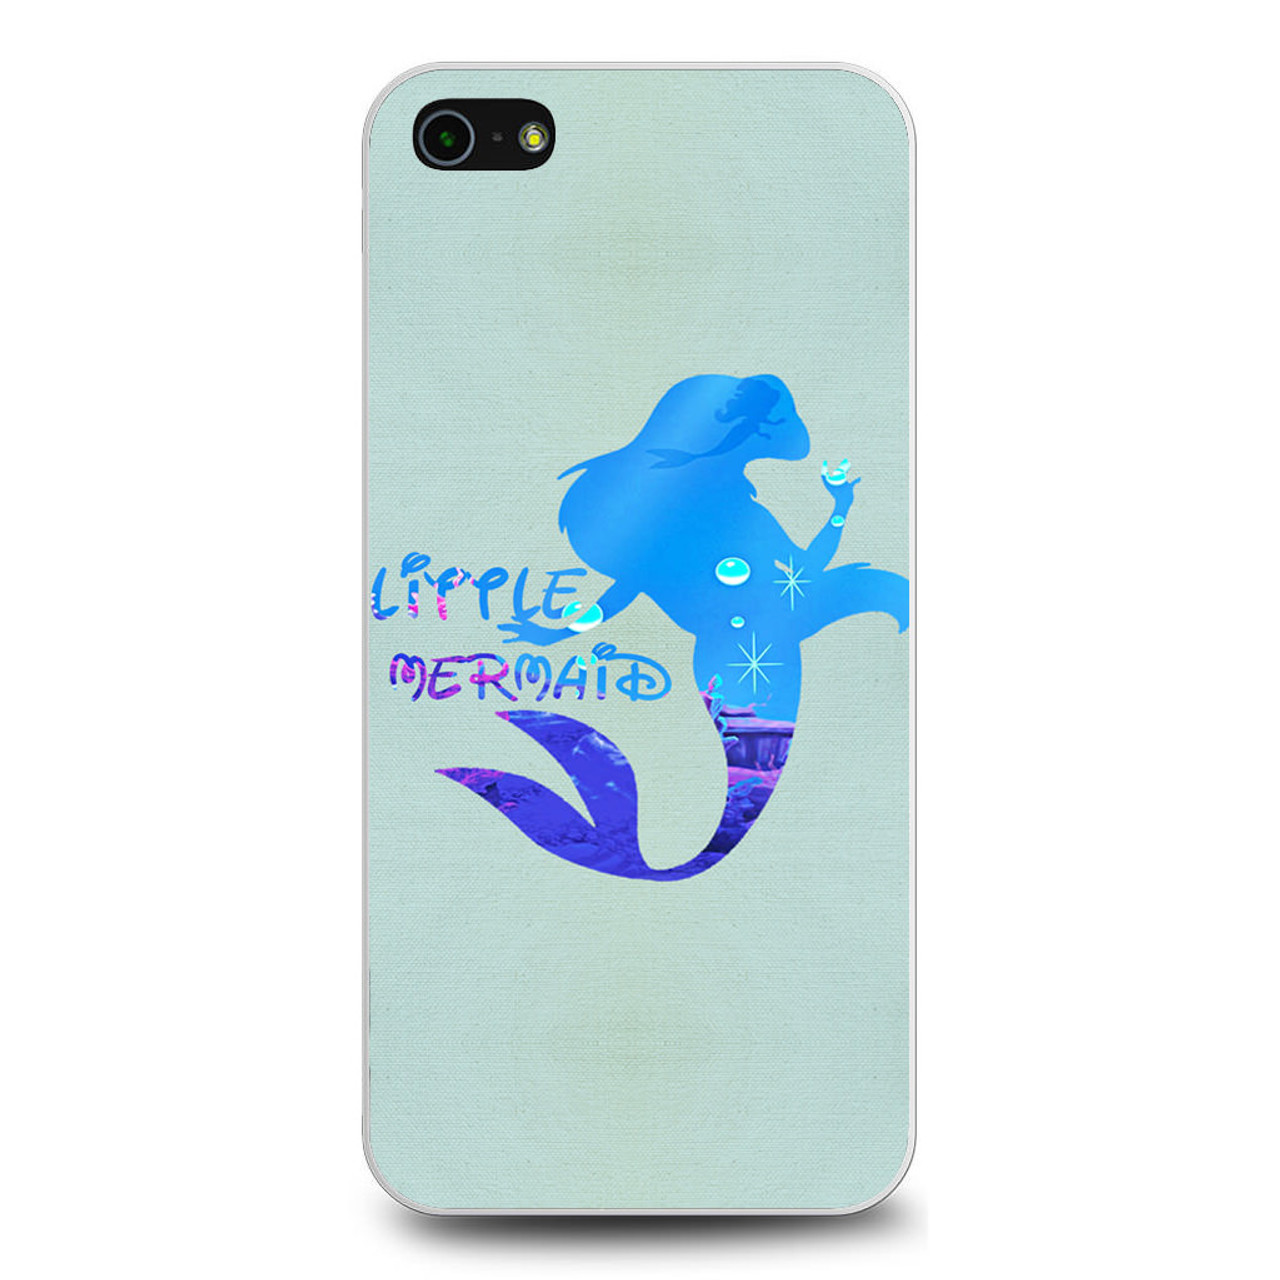 Princess Ariel Mermaid quote iphone case